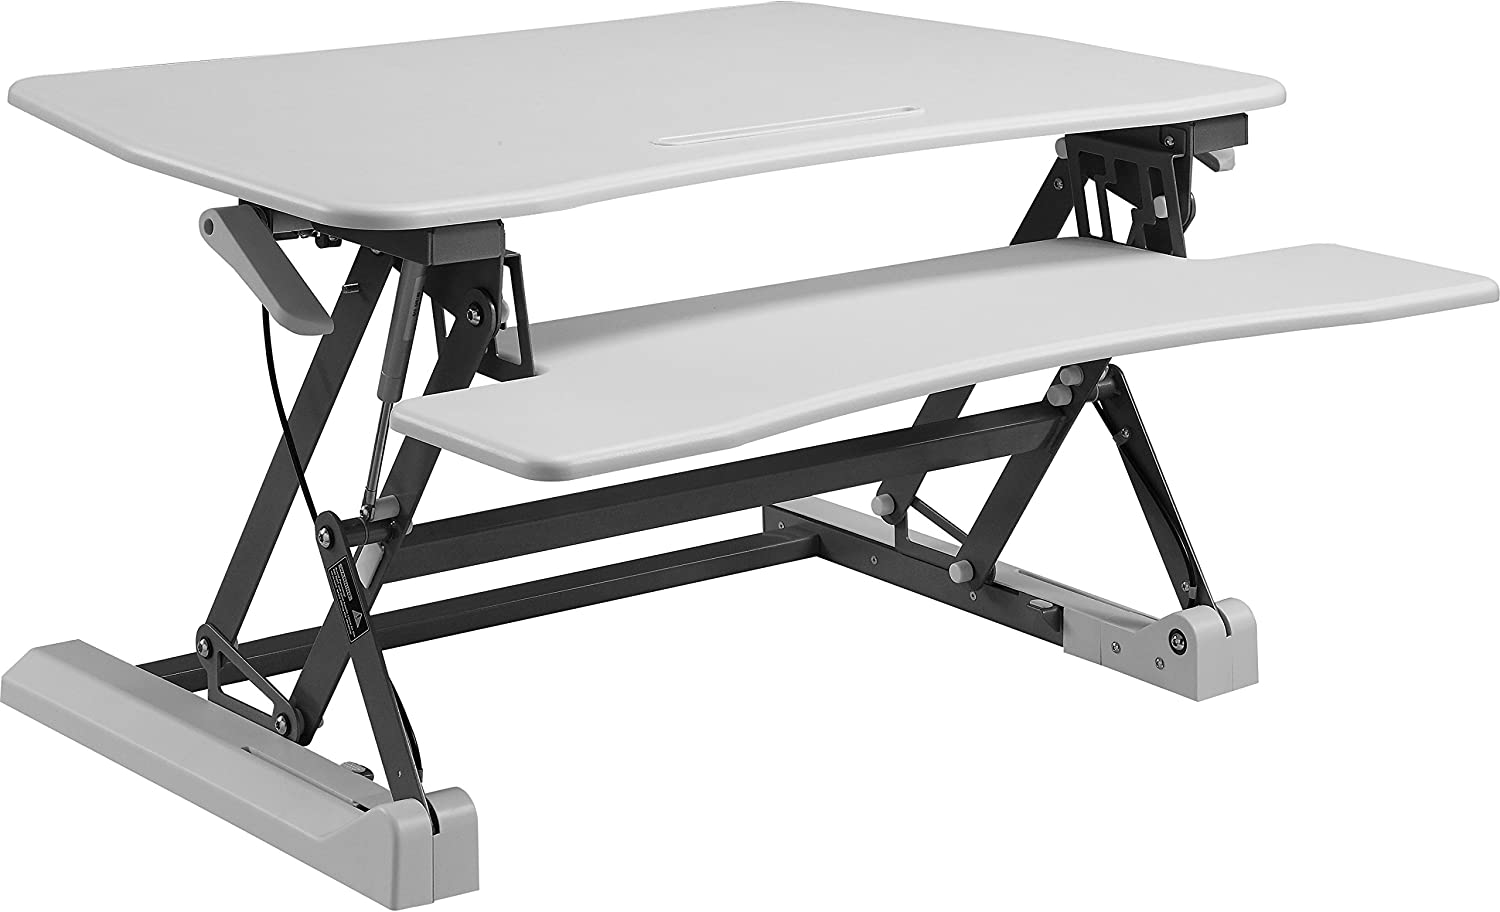 Lorell Sit-to-stand Gas Lift Desk Riser, White